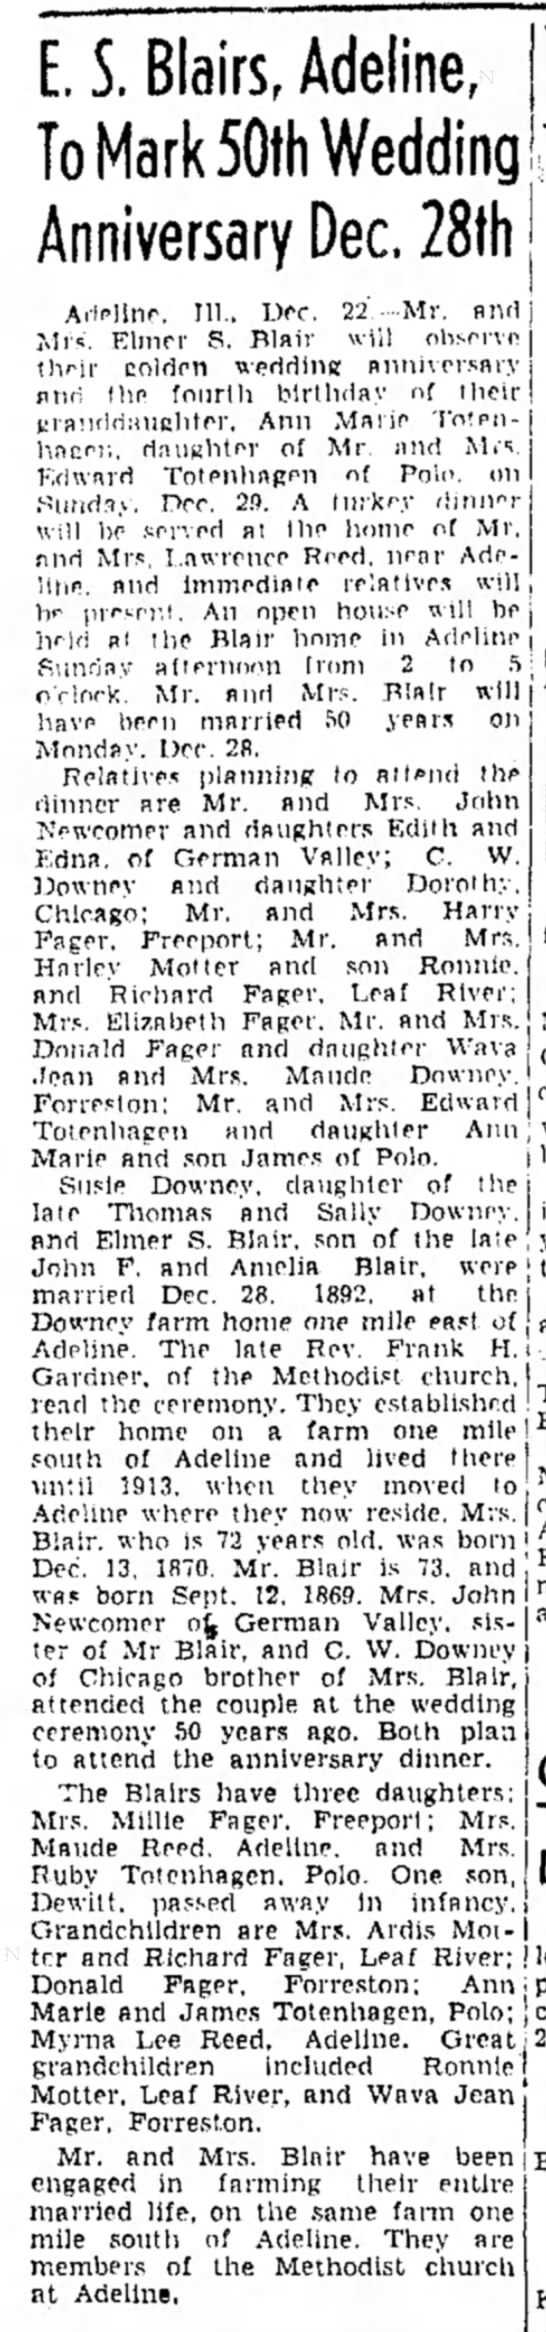 22 December 1942 Elmer S. Blair 50th anniversary - lots of information